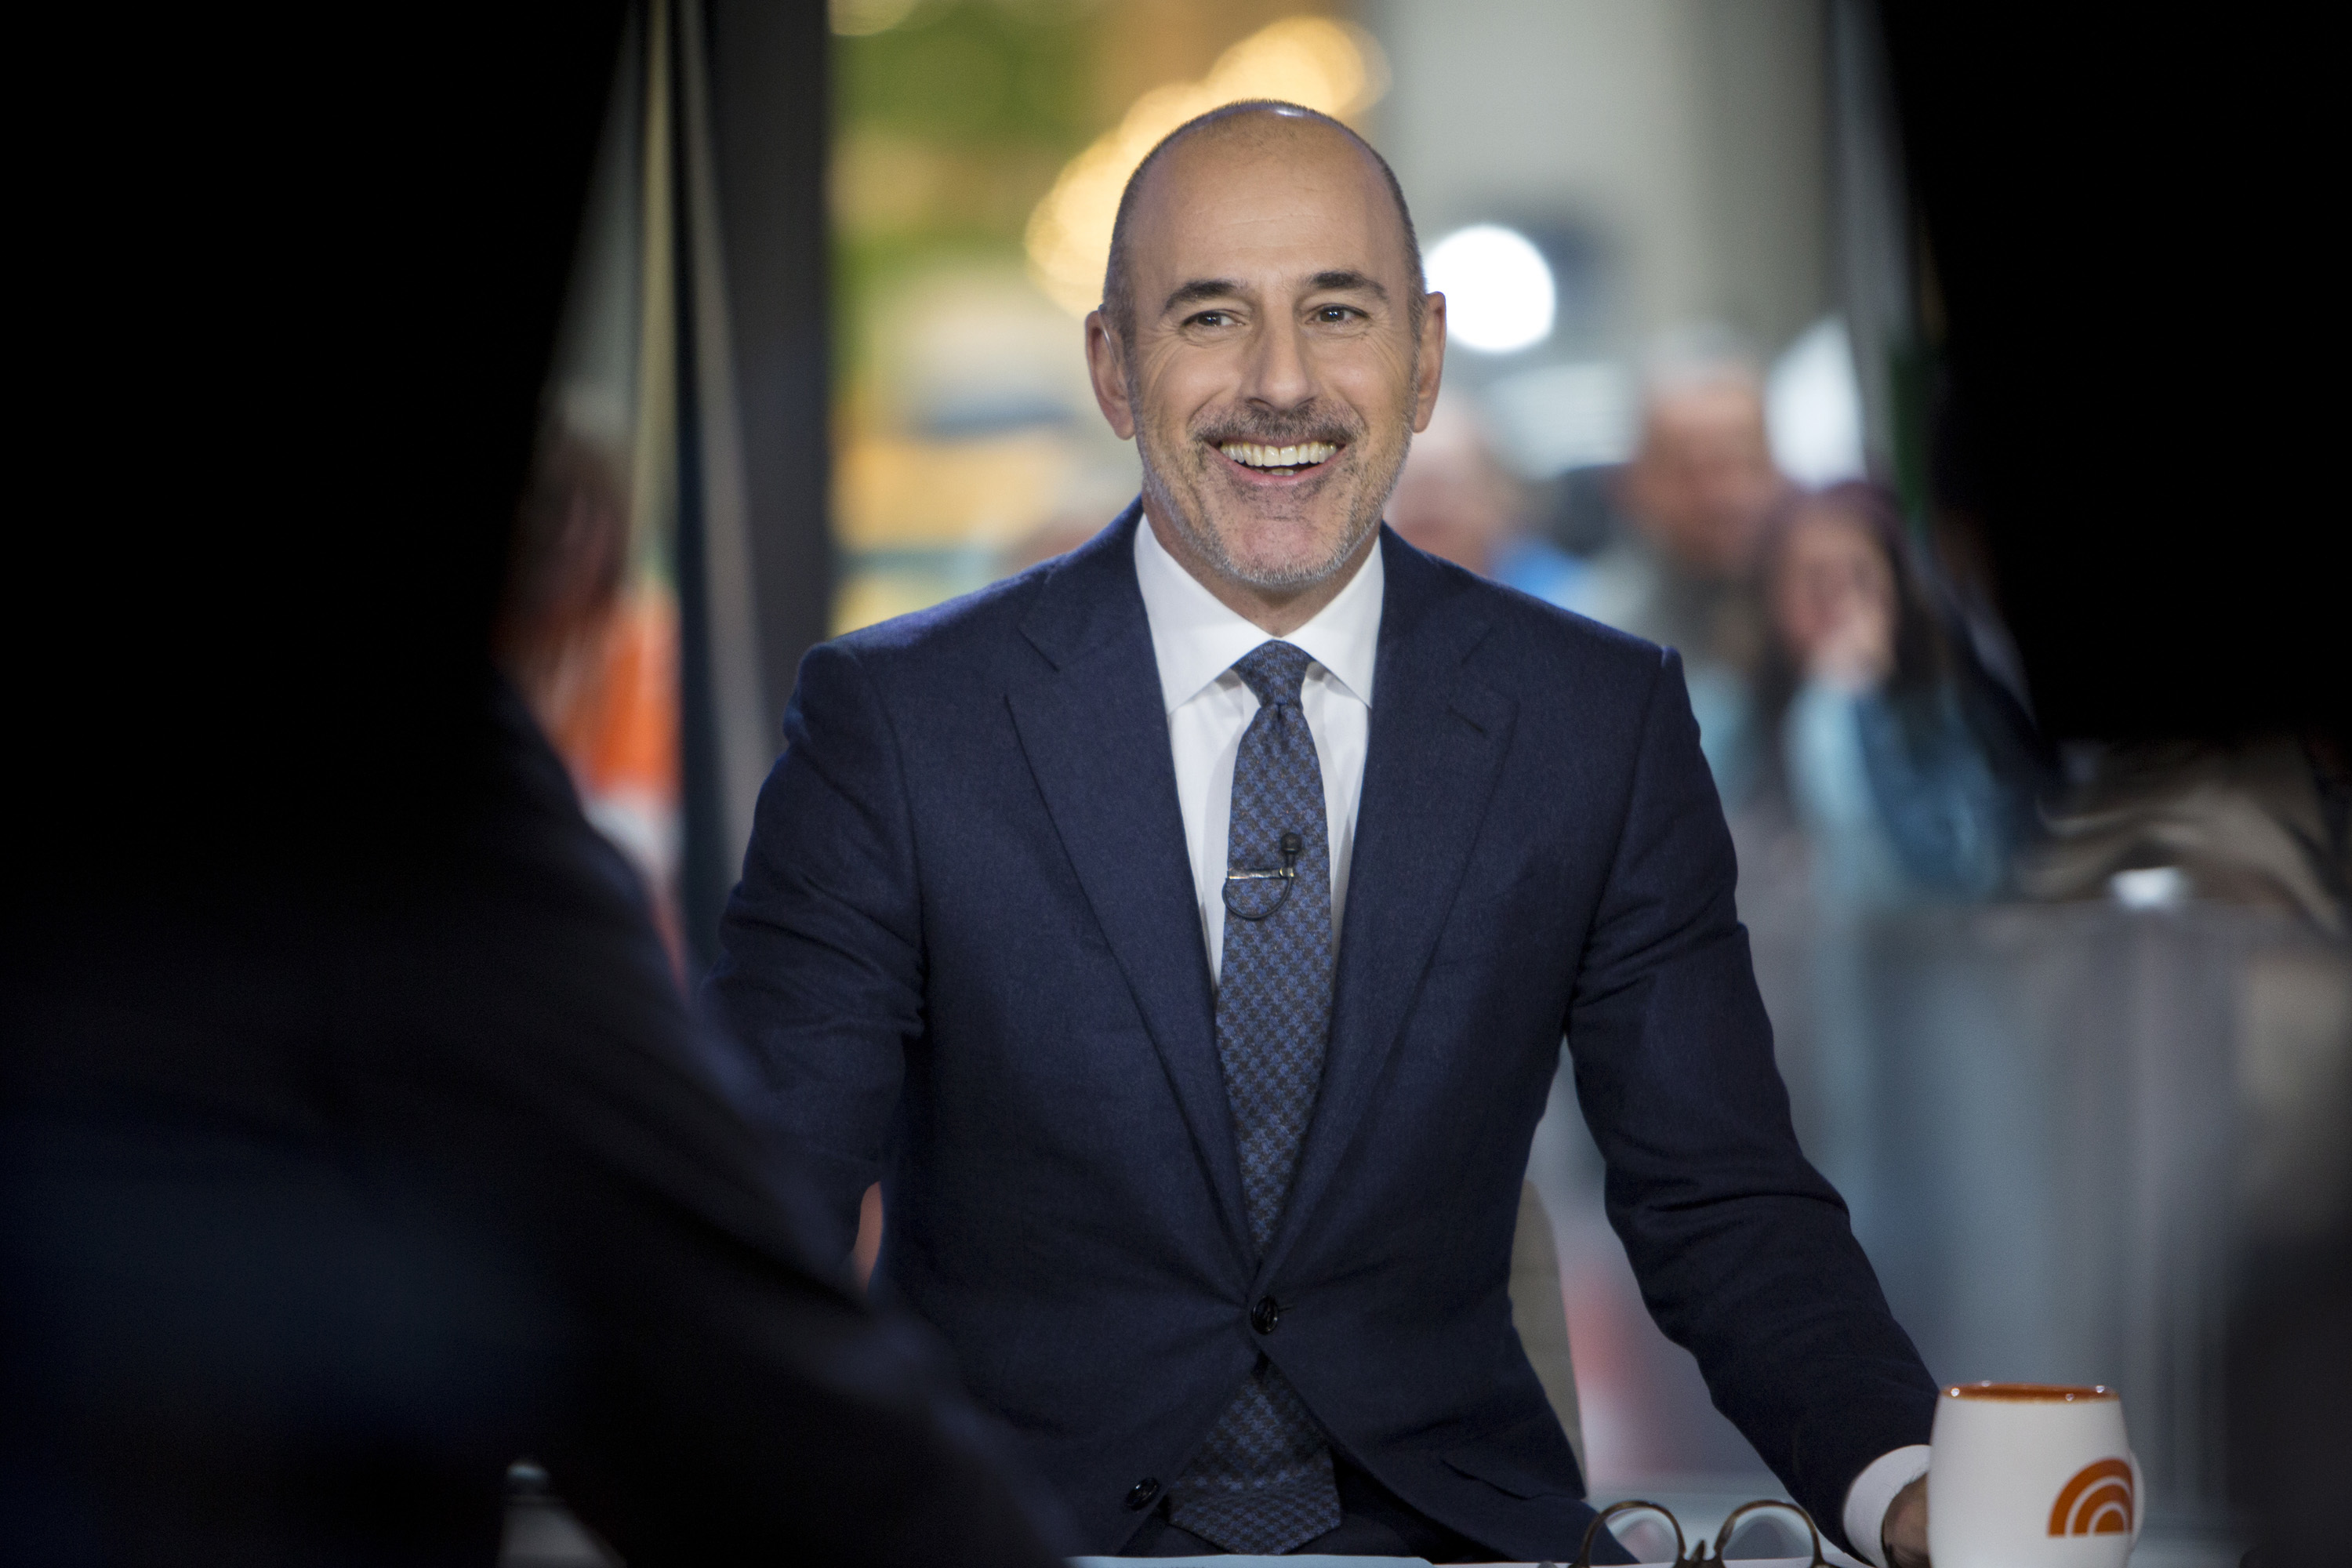 New Zealand looks at U.S. anchor Lauer's lease after sex claims